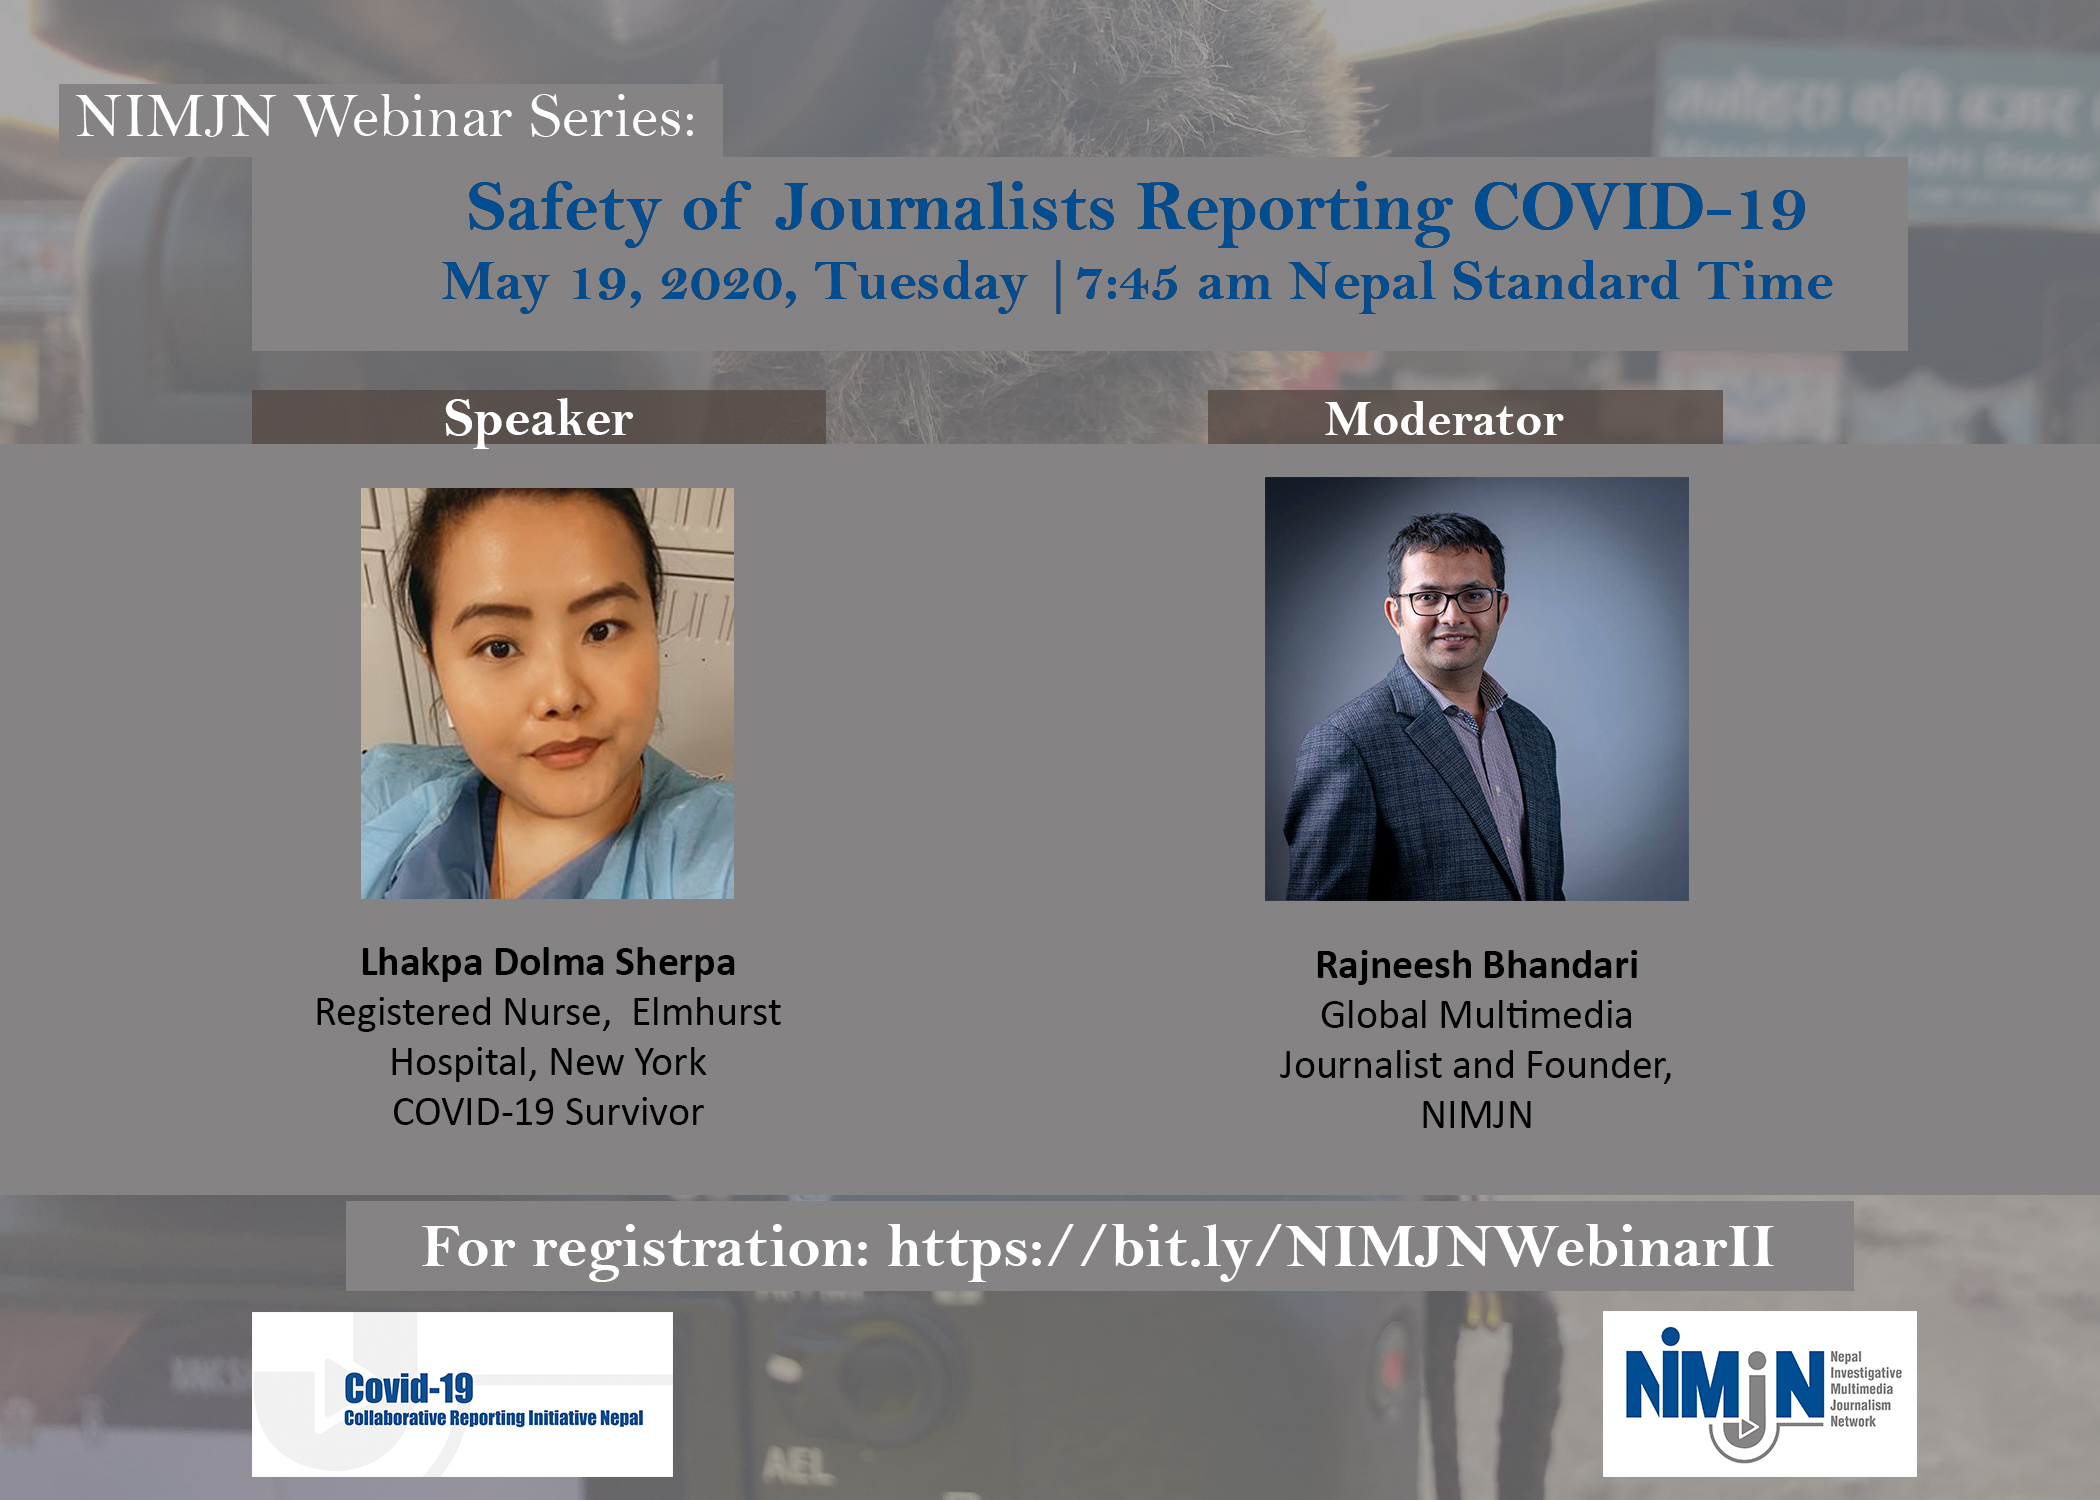 NIMJN Webinar: Safety of Journalists Reporting COVID-19